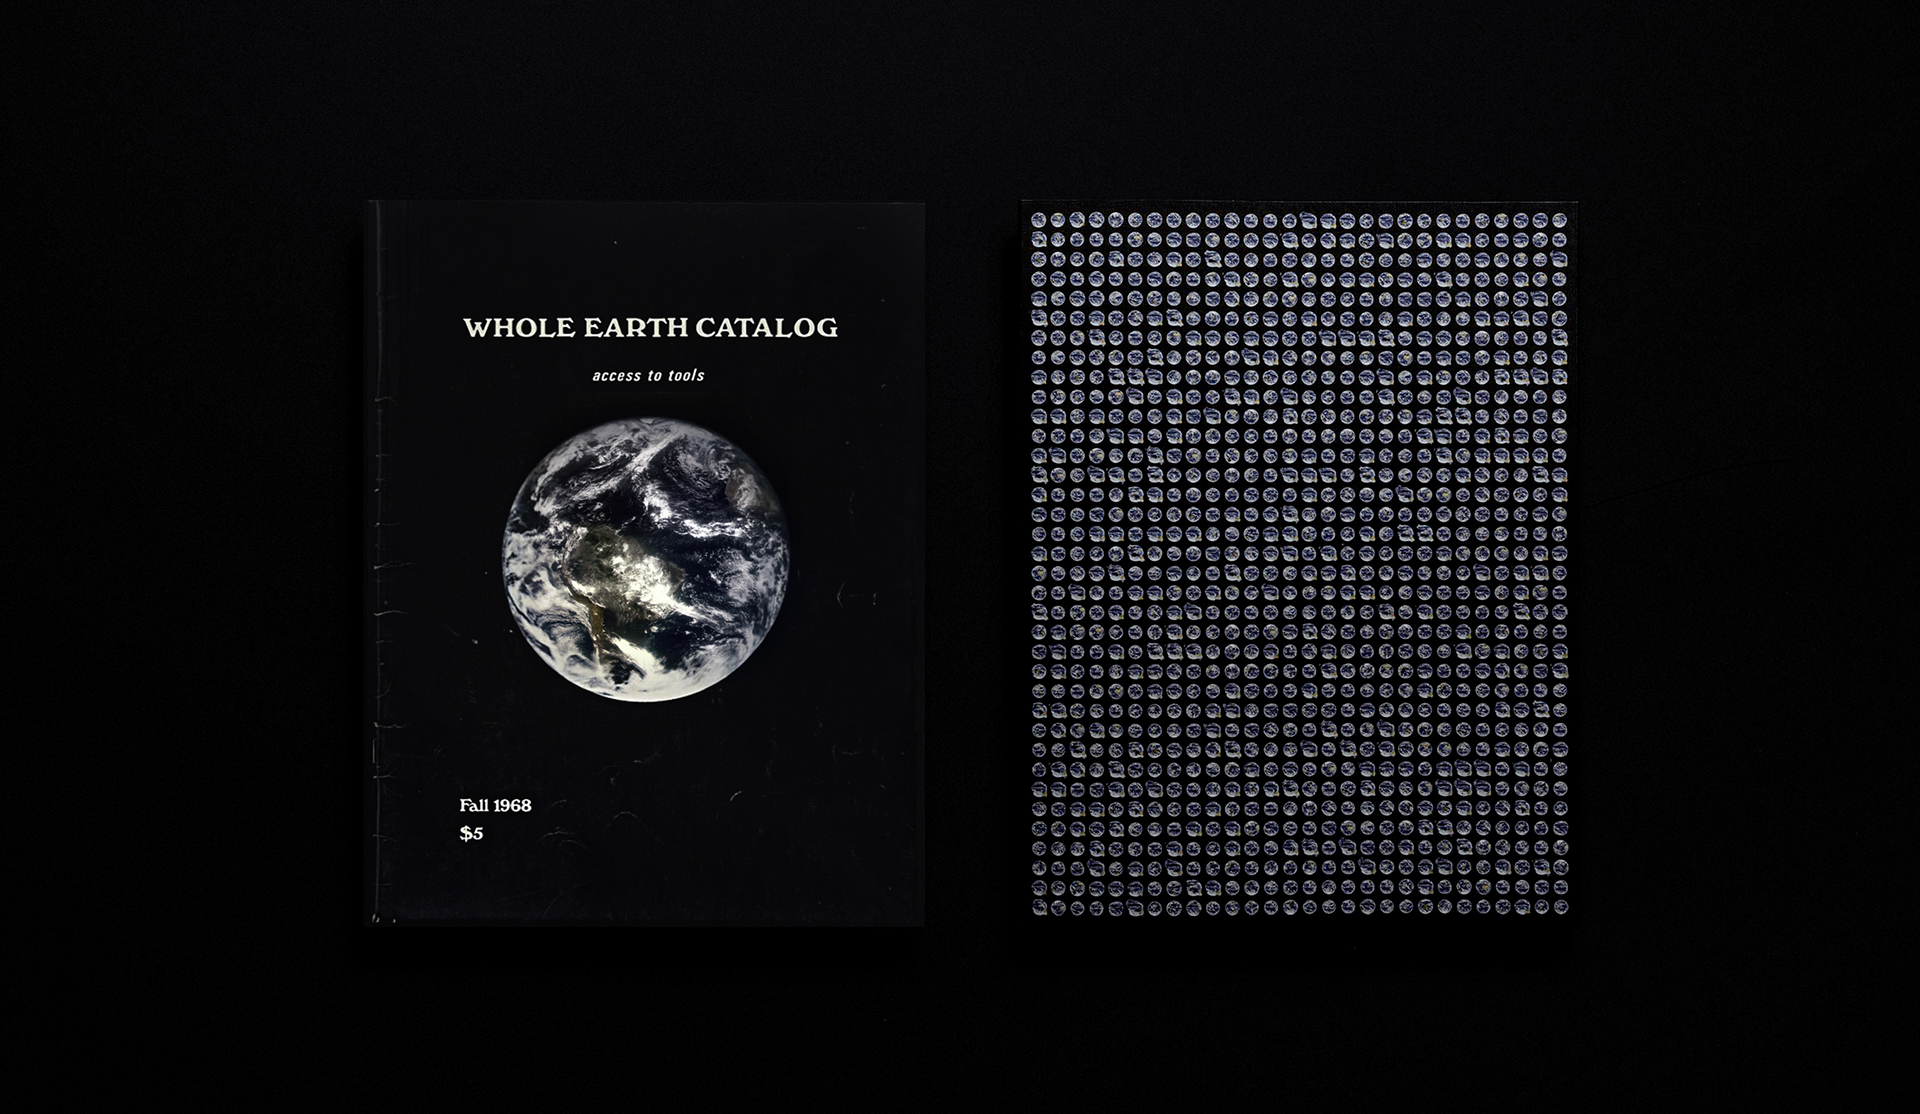 Changing Matter Catalog next to the Whole Earth Catalog